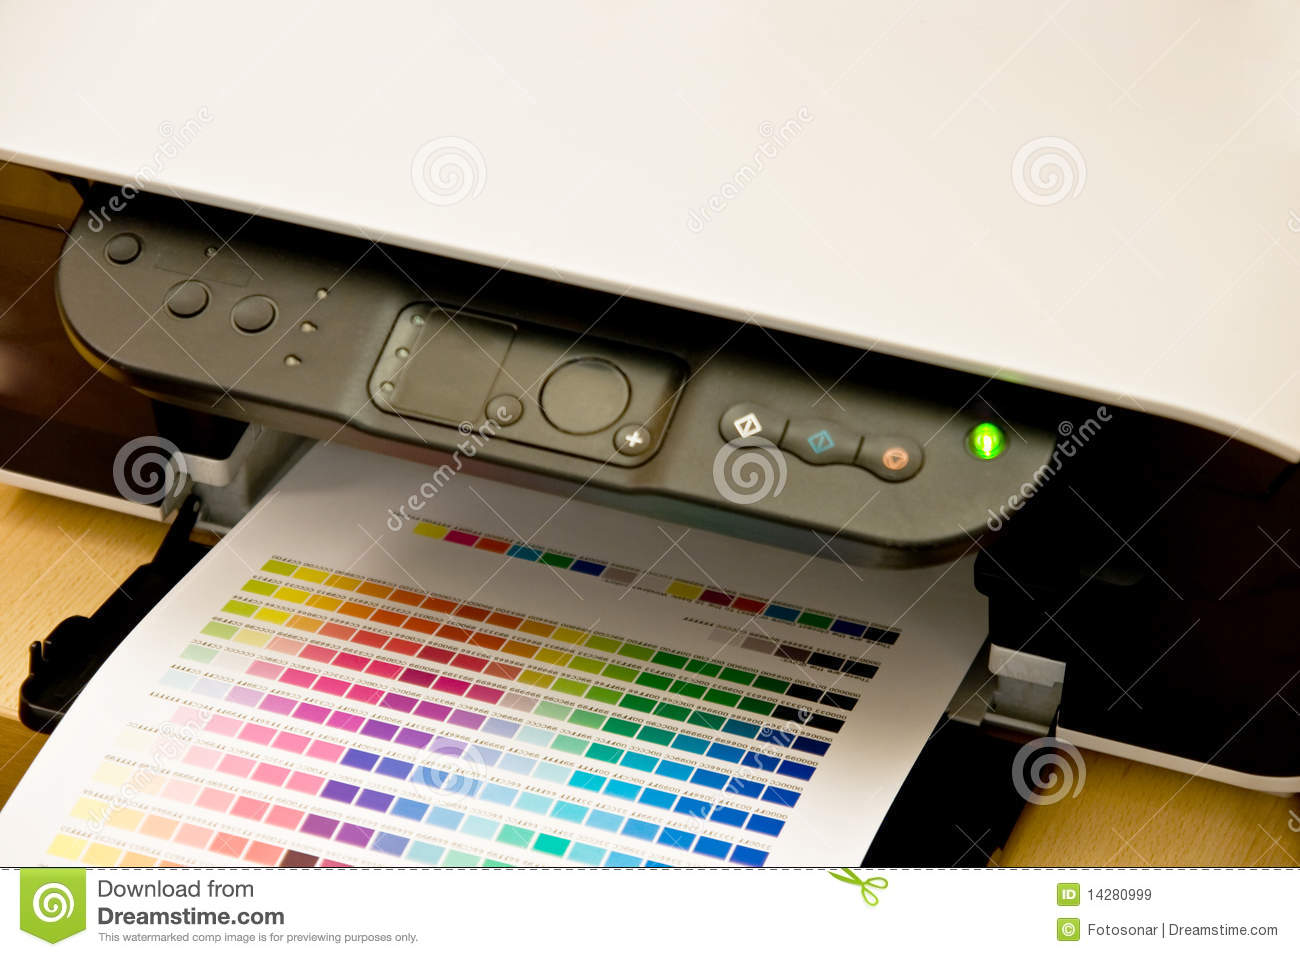 how to find which color less printer